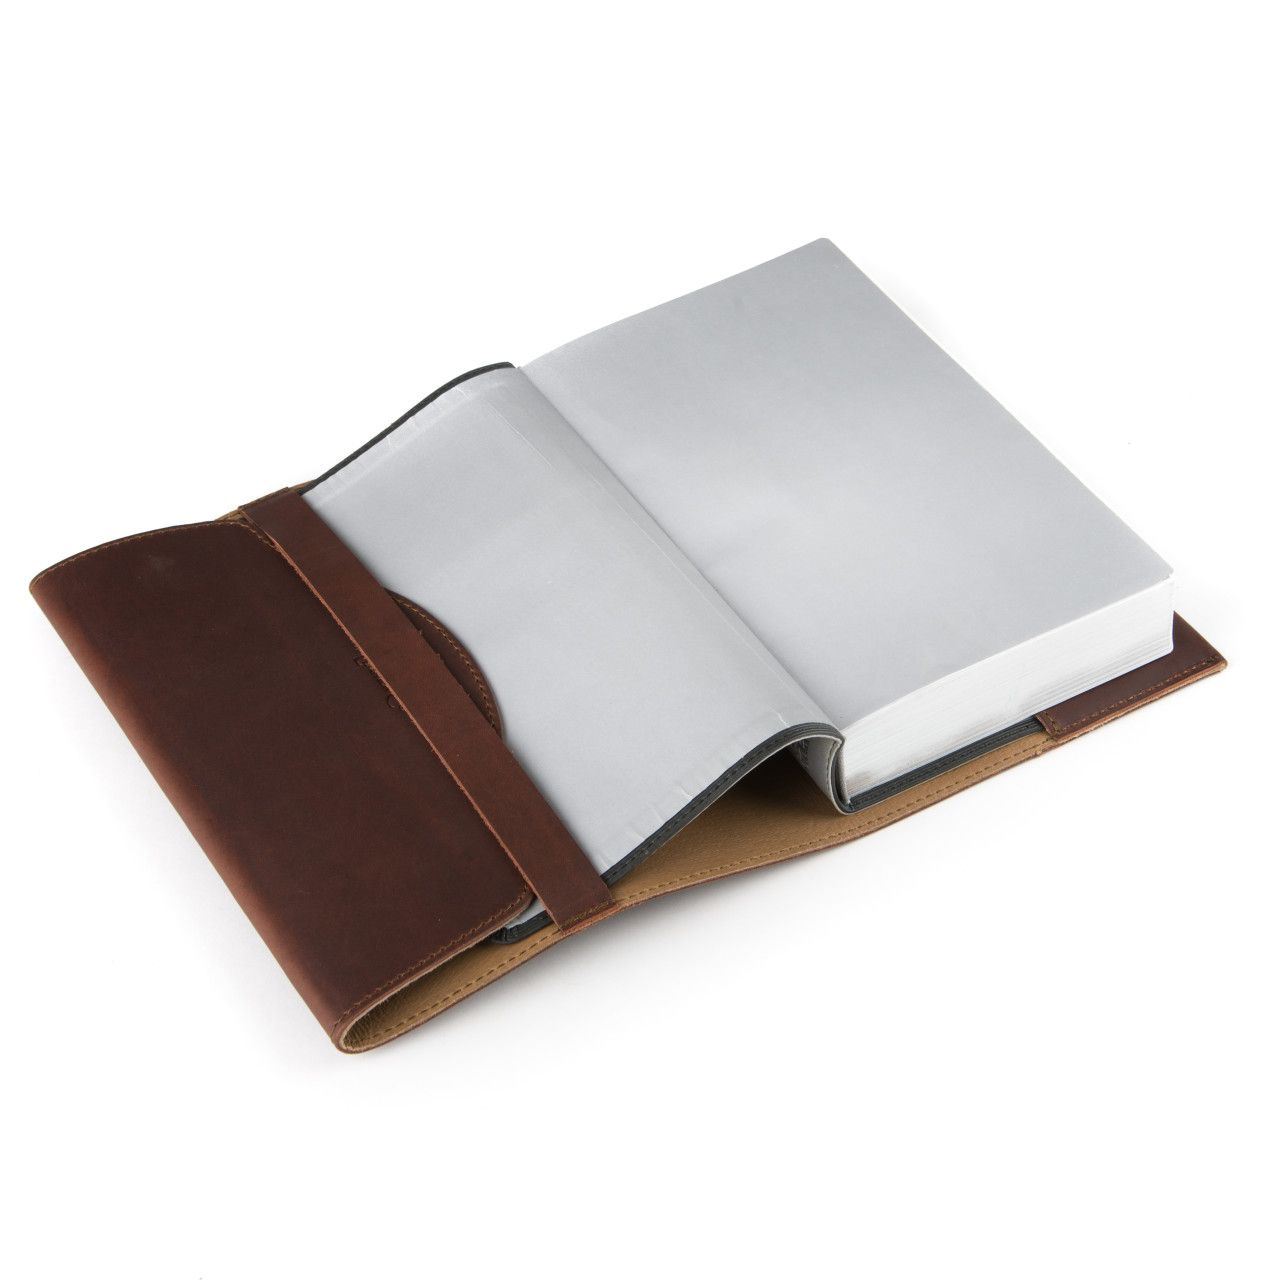 Bible in the leather book cover medium in chestnut leather